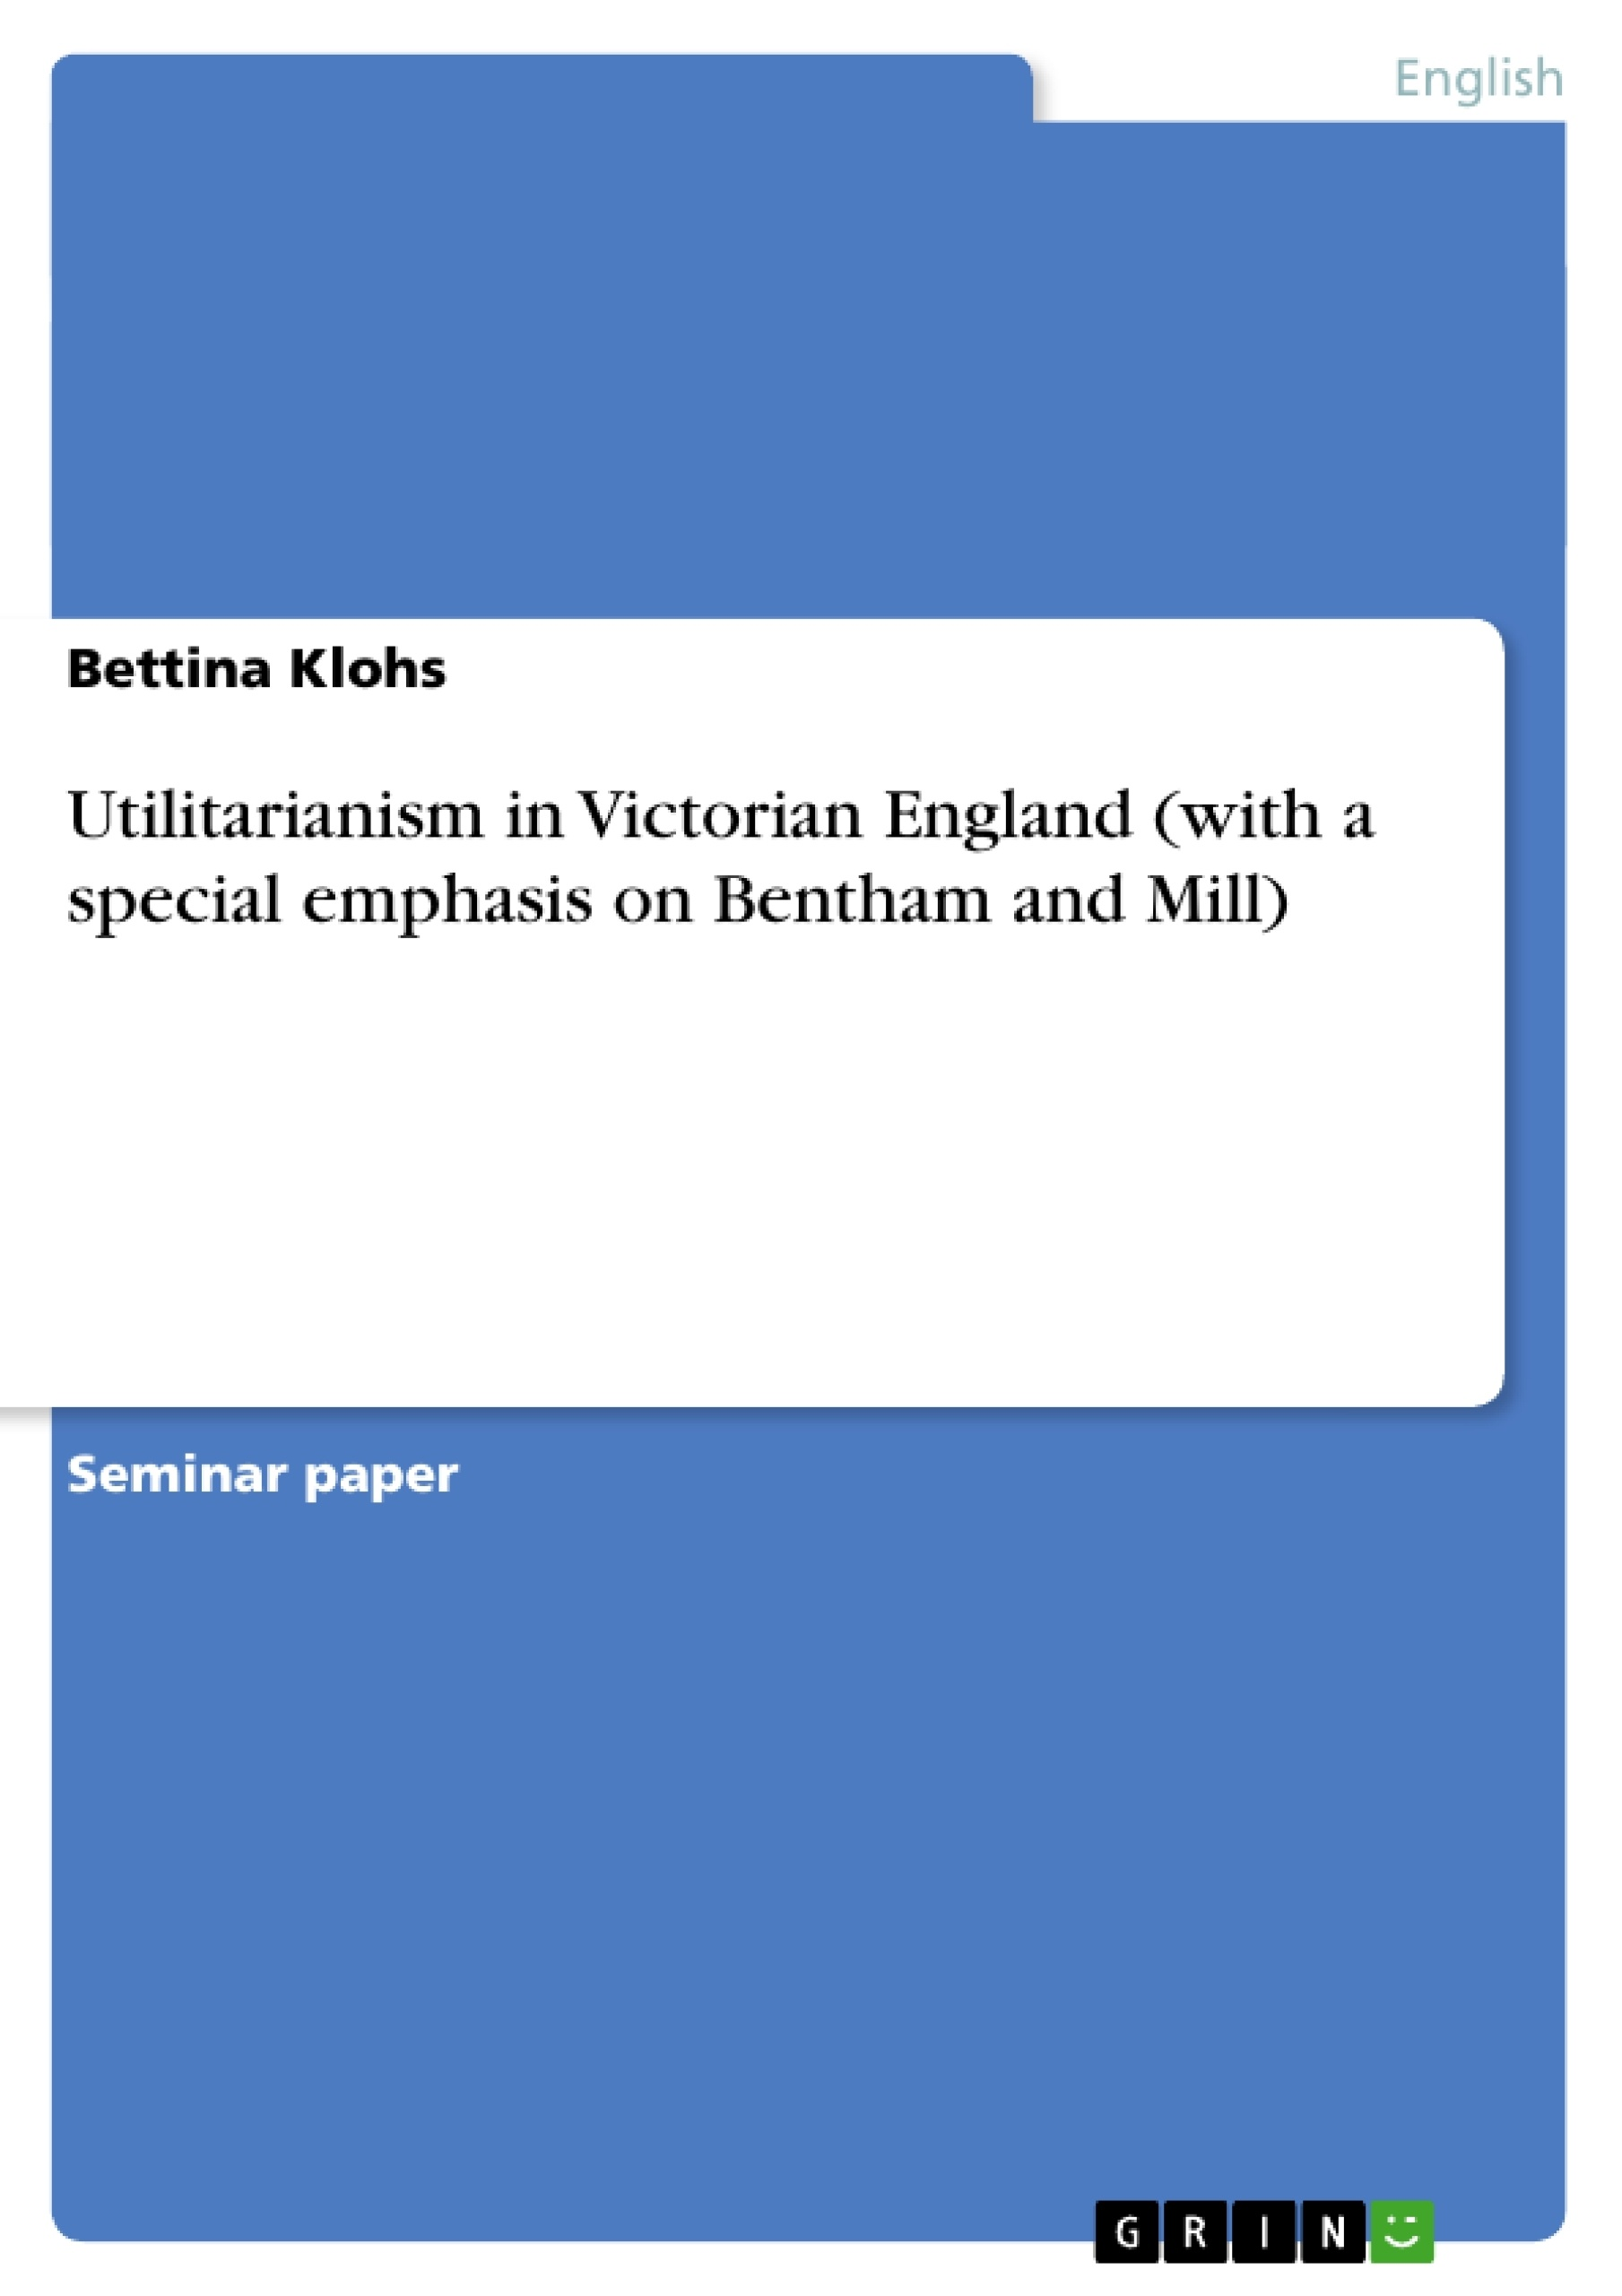 utilitarianism in victorian england a special emphasis on  upload your own papers earn money and win an iphone x